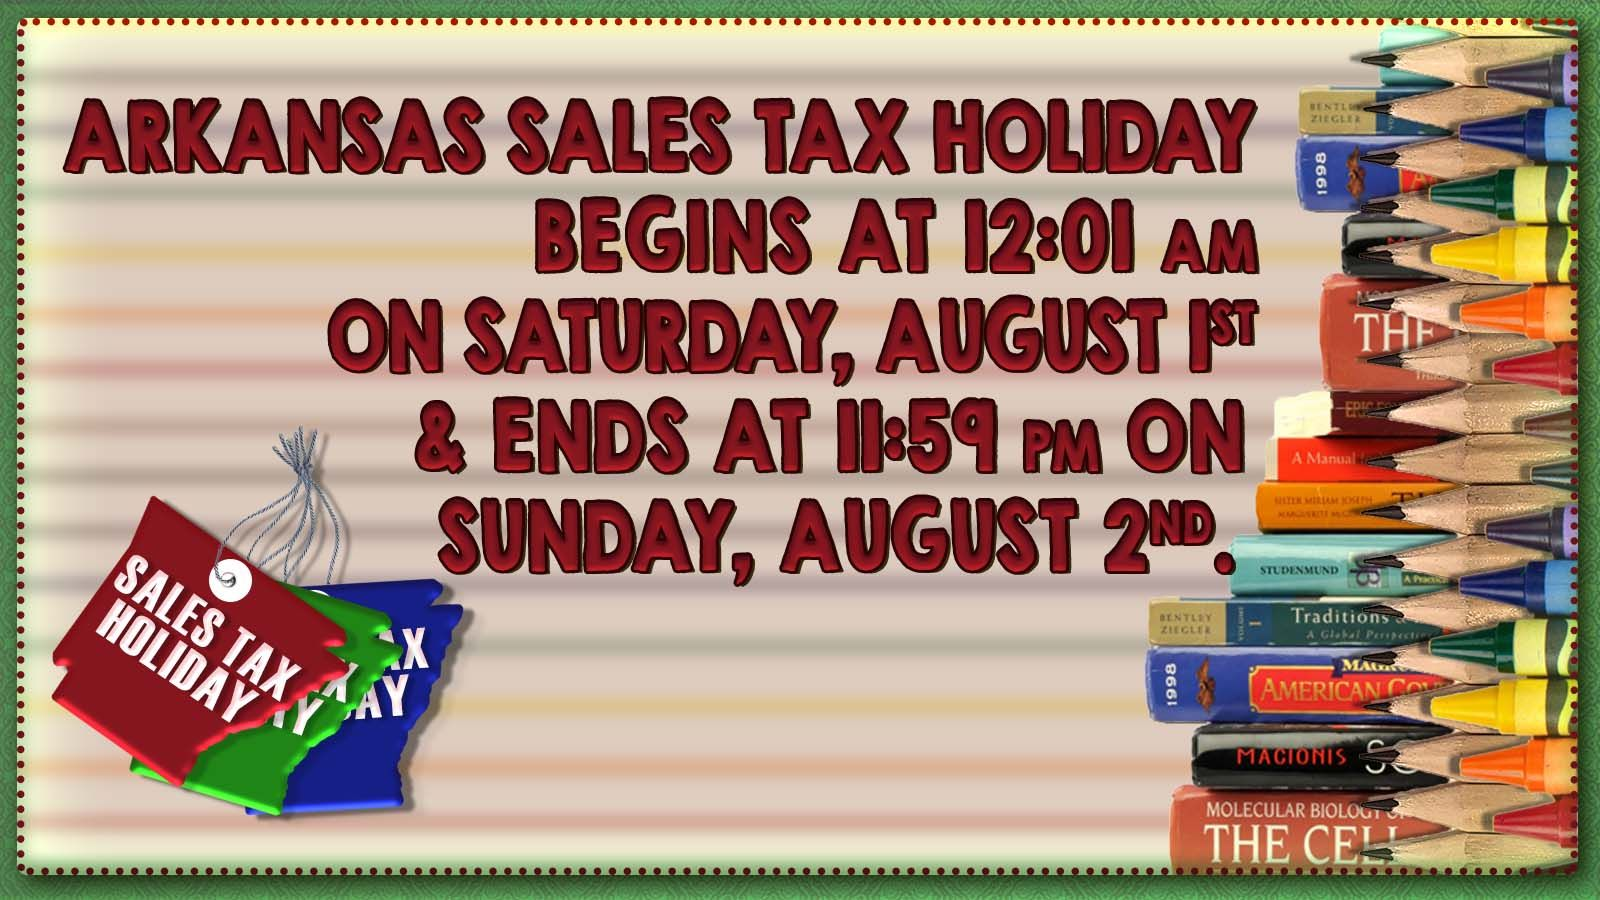 Arkansas Sales Tax Holiday 2020